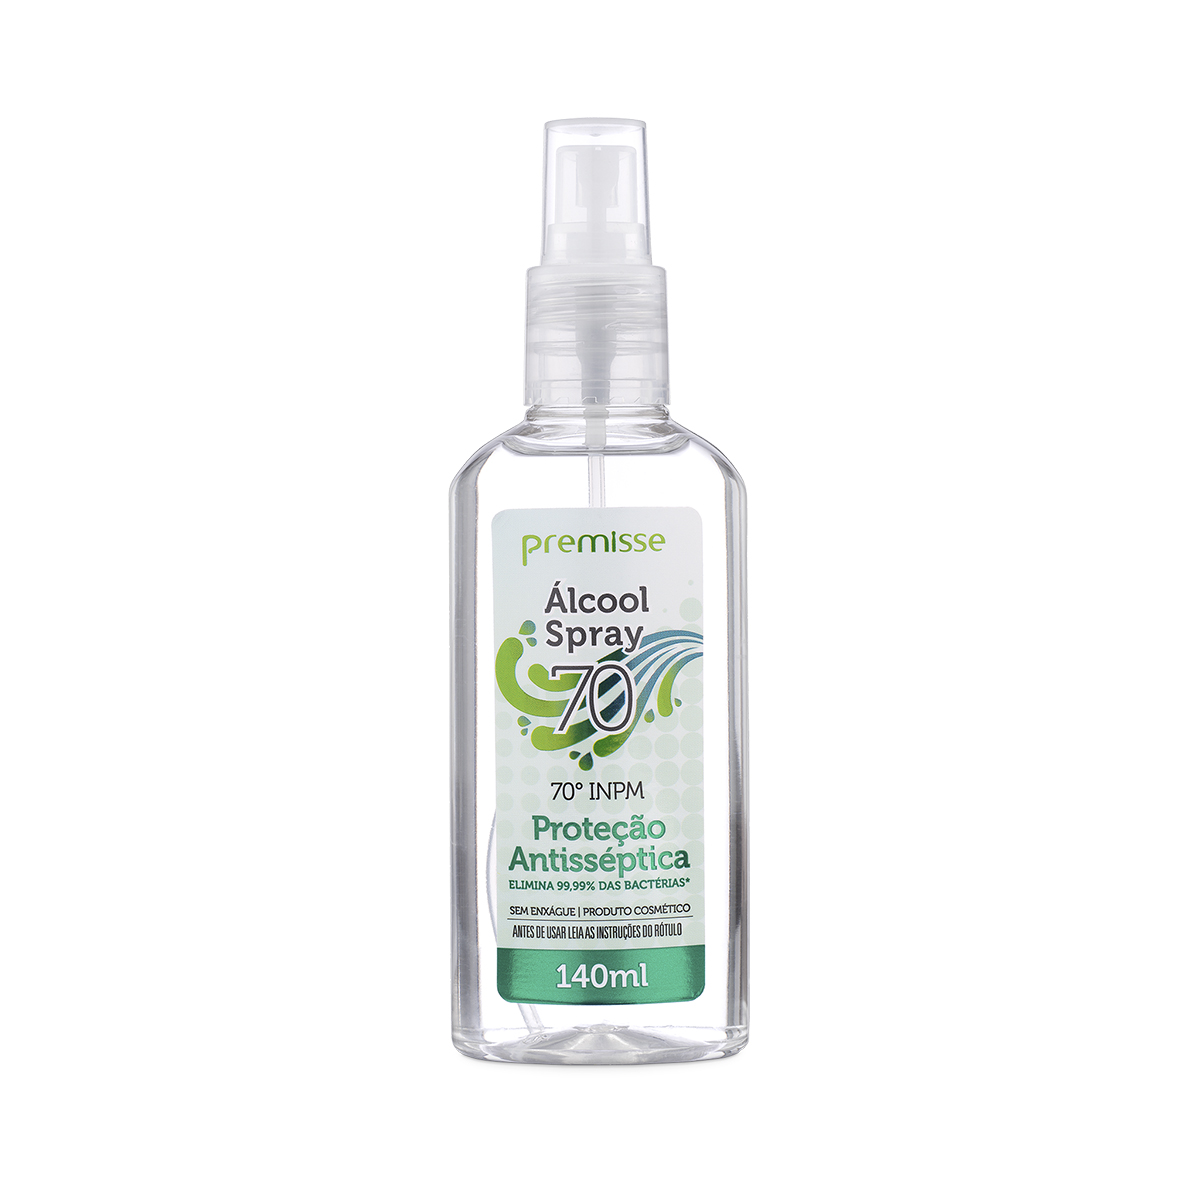 Álcool Spray 70º INPM Premisse 140ml